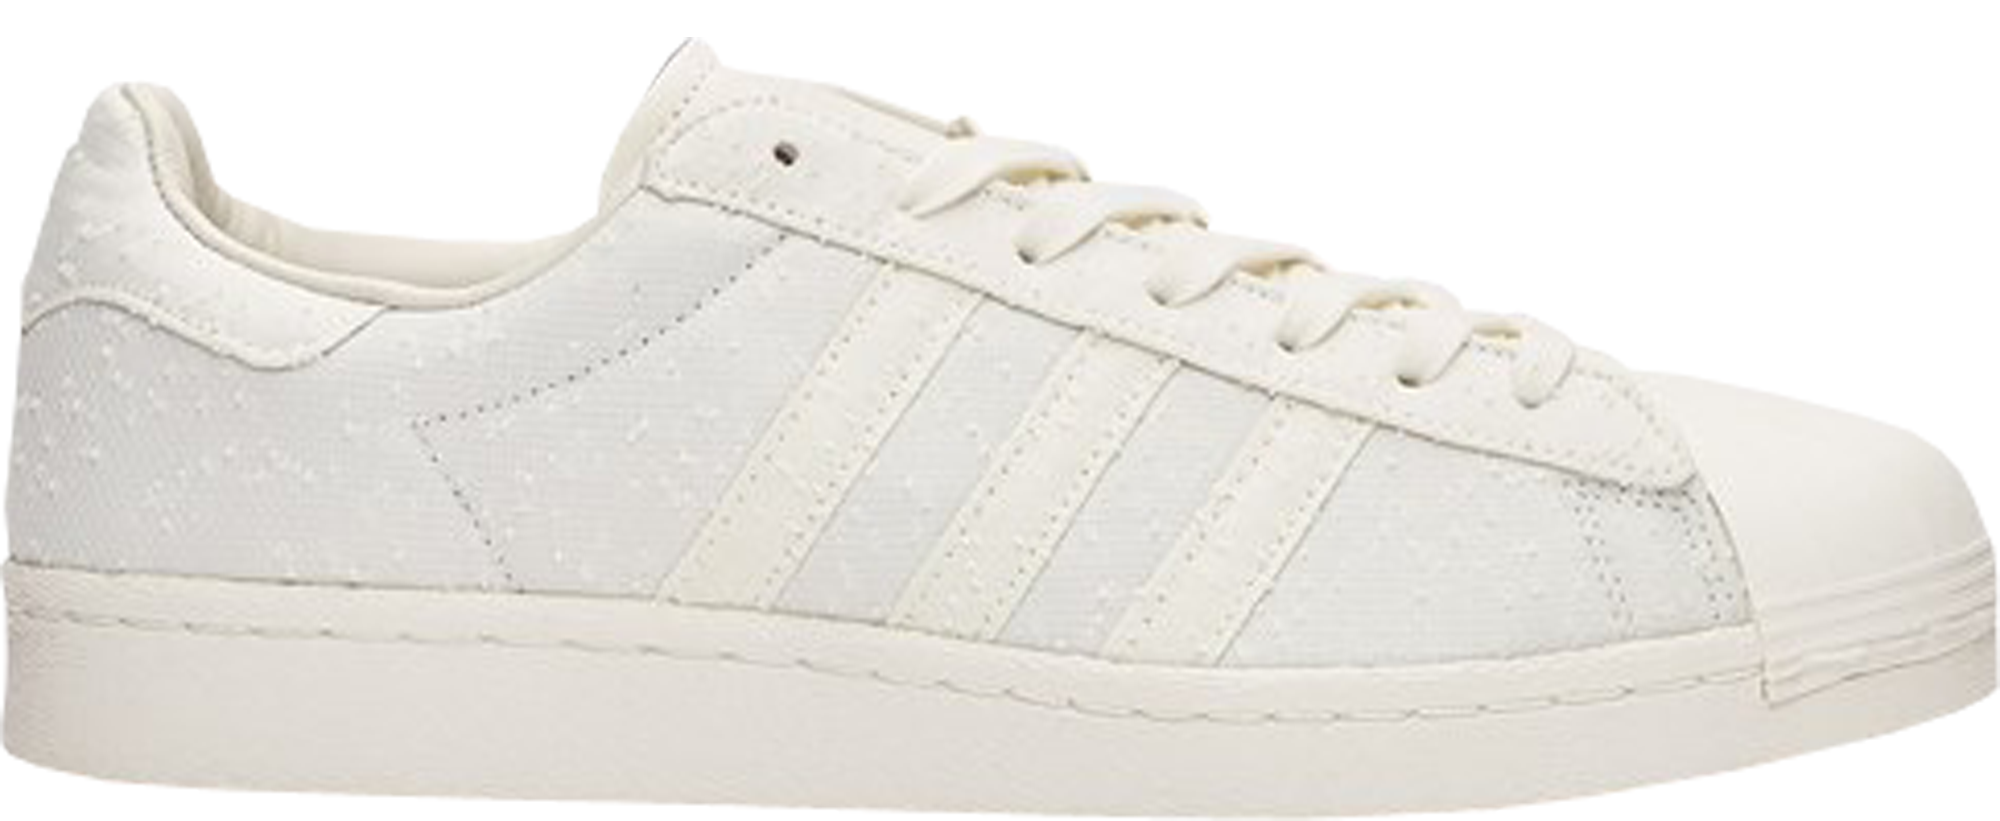 Cheap Adidas Superstar Infant (Running White/Core Black) DTLR